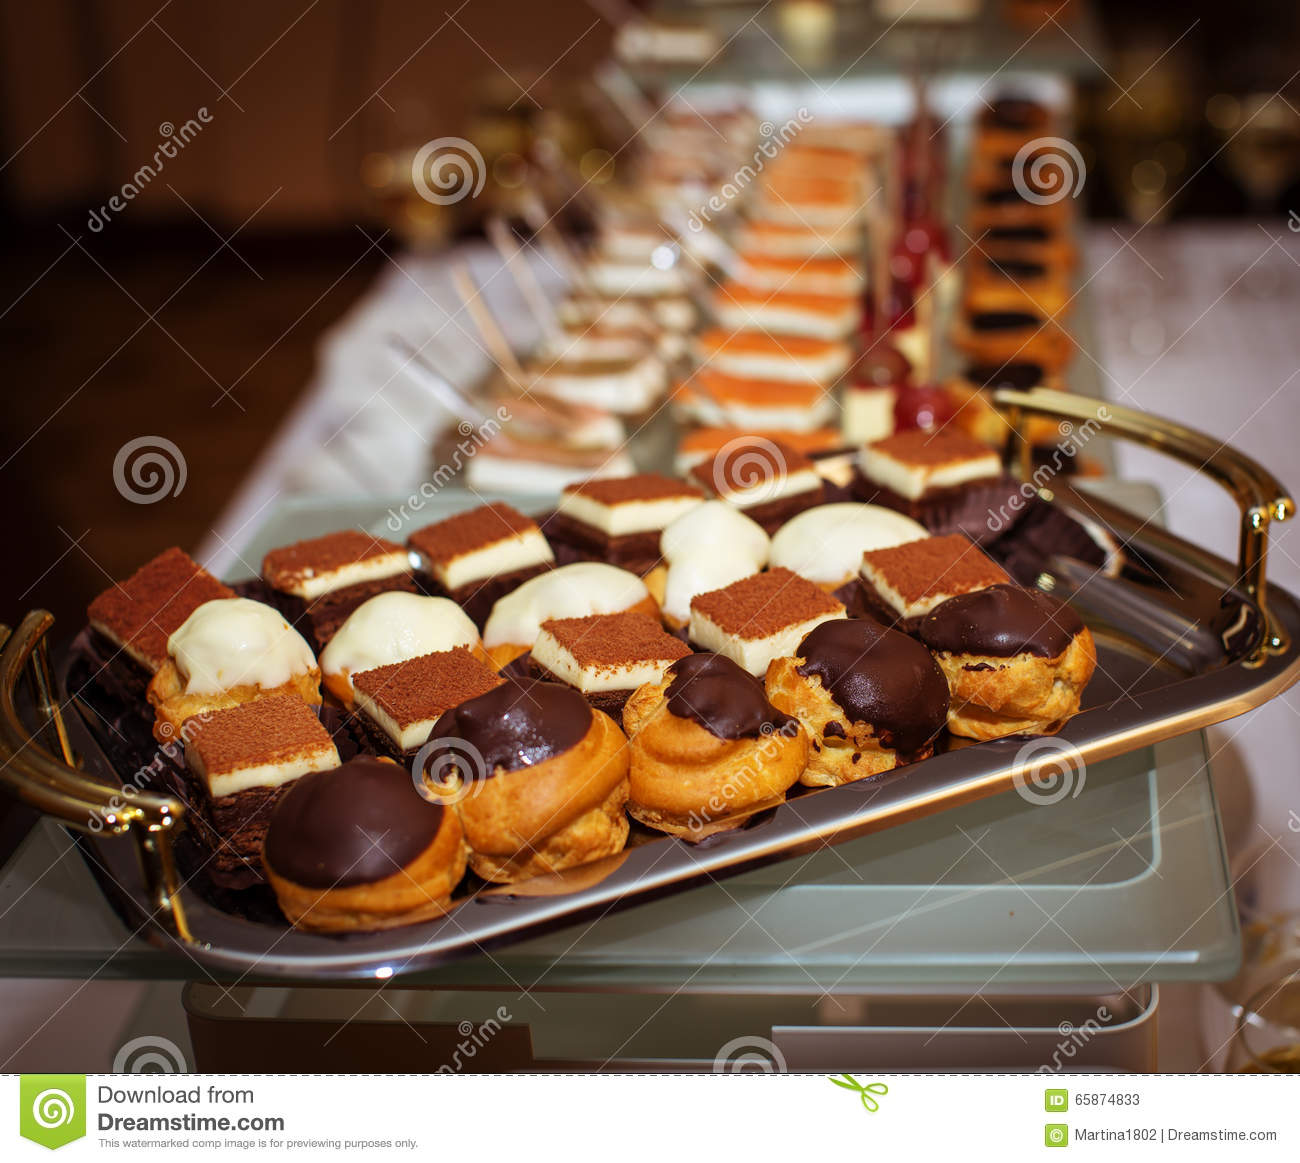 Buffet table with dessert